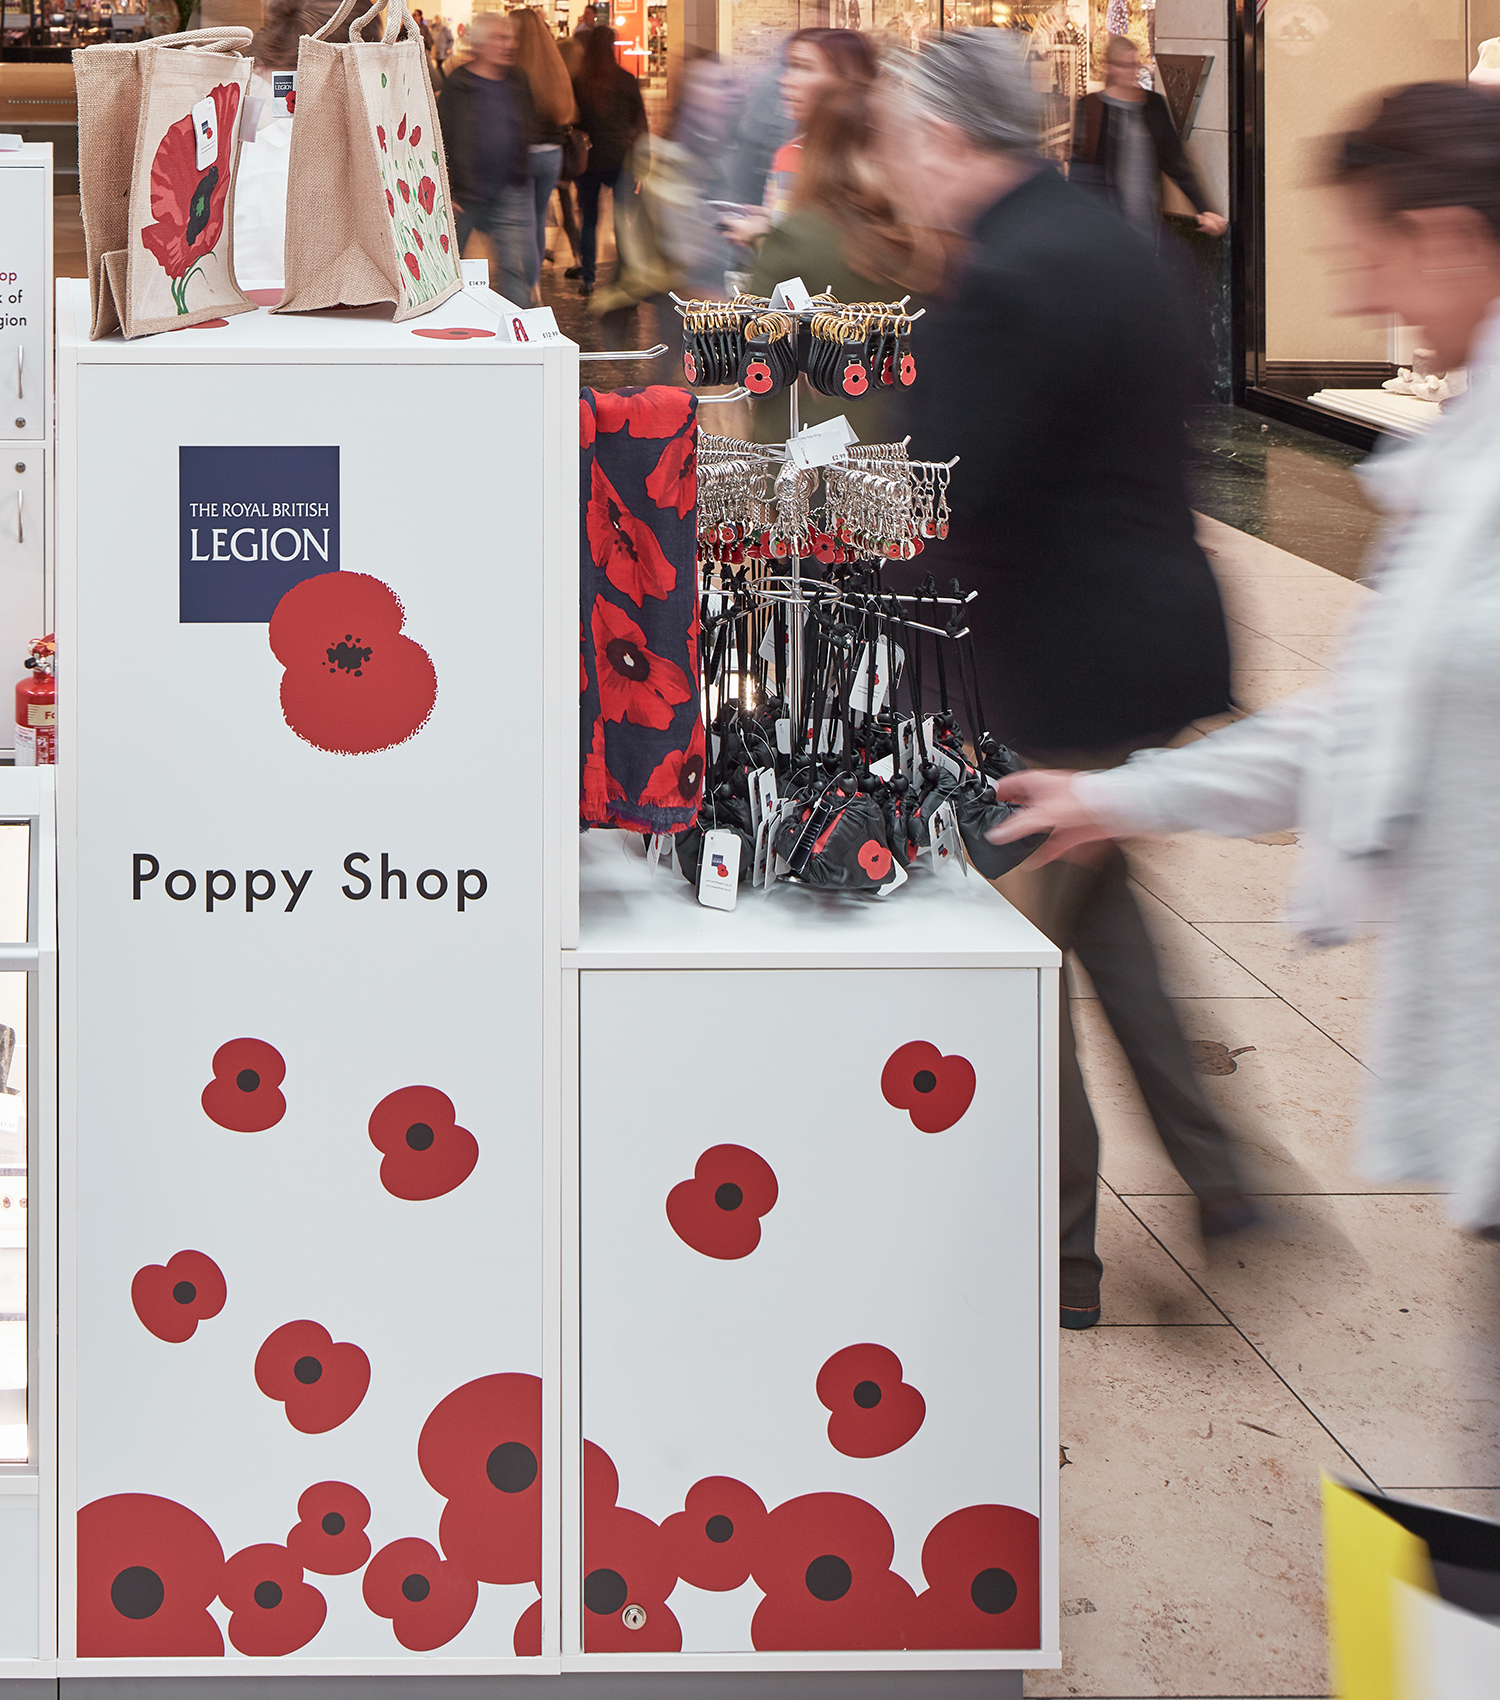 Poppy Shop Pop Up Store